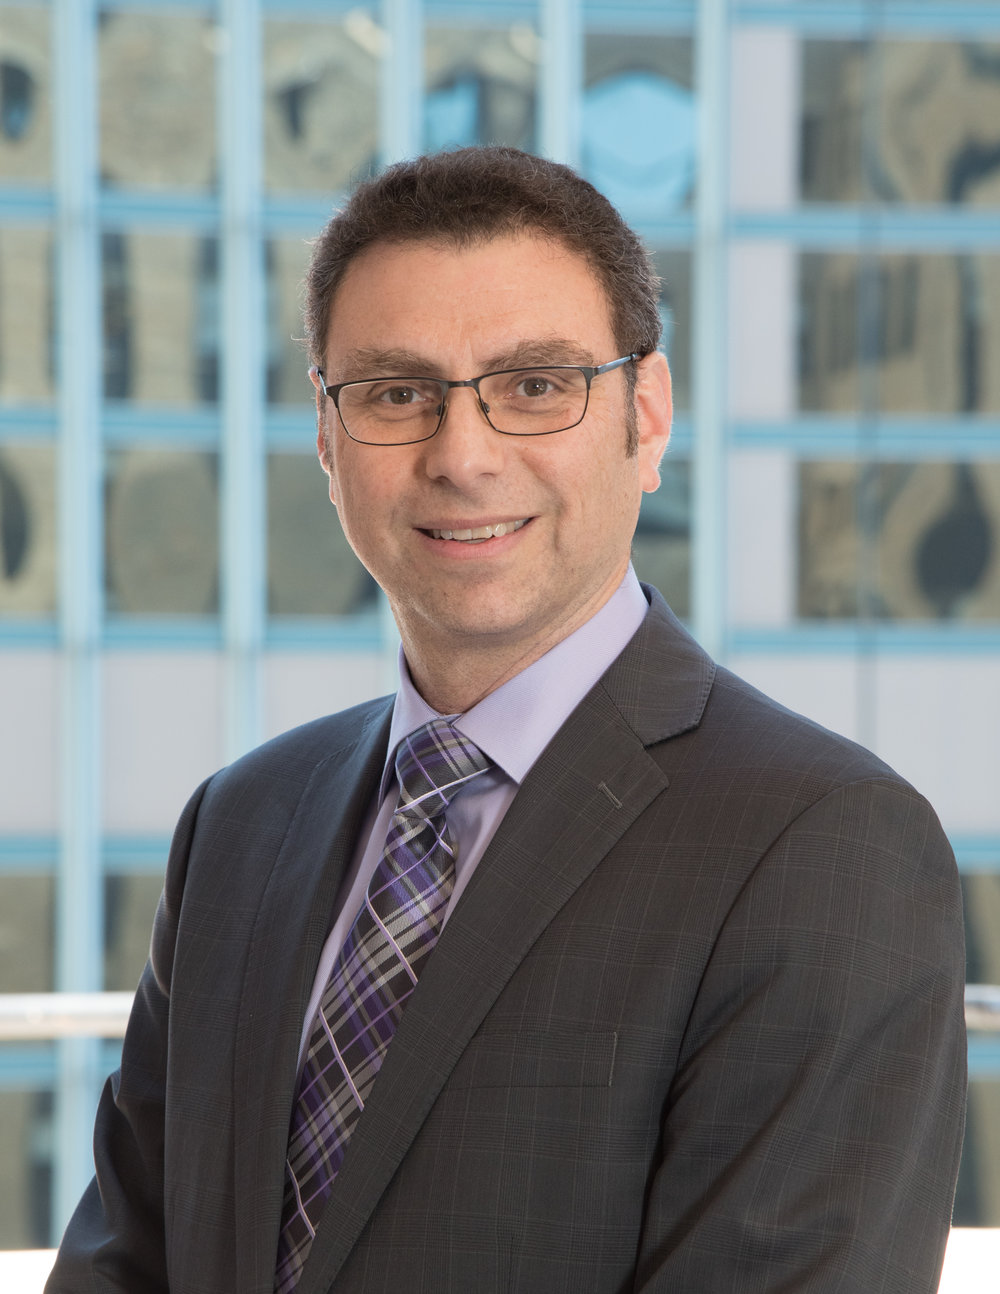 Jeffrey C. Ruderman - Jeffrey C. Ruderman, a partner of the firm, concentrates his practice in the area of commercial litigation and real estate transactions both in New York and New Jersey.Mr. Ruderman has represented clients in numerous matters of complex litigation involving Federal RICO claims, insurance coverage issues, consumer fraud actions and the New York State Beverage Franchise Law. He has acted as outside general counsel for a consortium of real estate investors as well as a nationally recognized food and beverage manufacturer and distributor advising as to general commercial endeavors.Mr. Ruderman has represented clients in their acquisition, divestiture, formation and restructuring of various business entities as well their associated commercial real estate acquisitions and commercial financing with major lending institutions. Mr. Ruderman has also represented defendants in commercial real estate foreclosure matters.Mr. Ruderman's experience also includes residential purchase and sale transactions and residential financing transactions representing lenders, borrowers and title insurance companies.EDUCATIONMr. Ruderman received a Juris Doctor degree from the Benjamin N. Cardozo School of Law at Yeshiva University, and received a Bachelor of Arts degree in Accounting and Information Systems from The City University of New York, Queens College.ADMISSIONSHe is admitted to practice law before the courts of New York, New Jersey, Connecticut, the United States District Courts of the Southern and Eastern Districts of New York and the United States District Court of New Jersey.